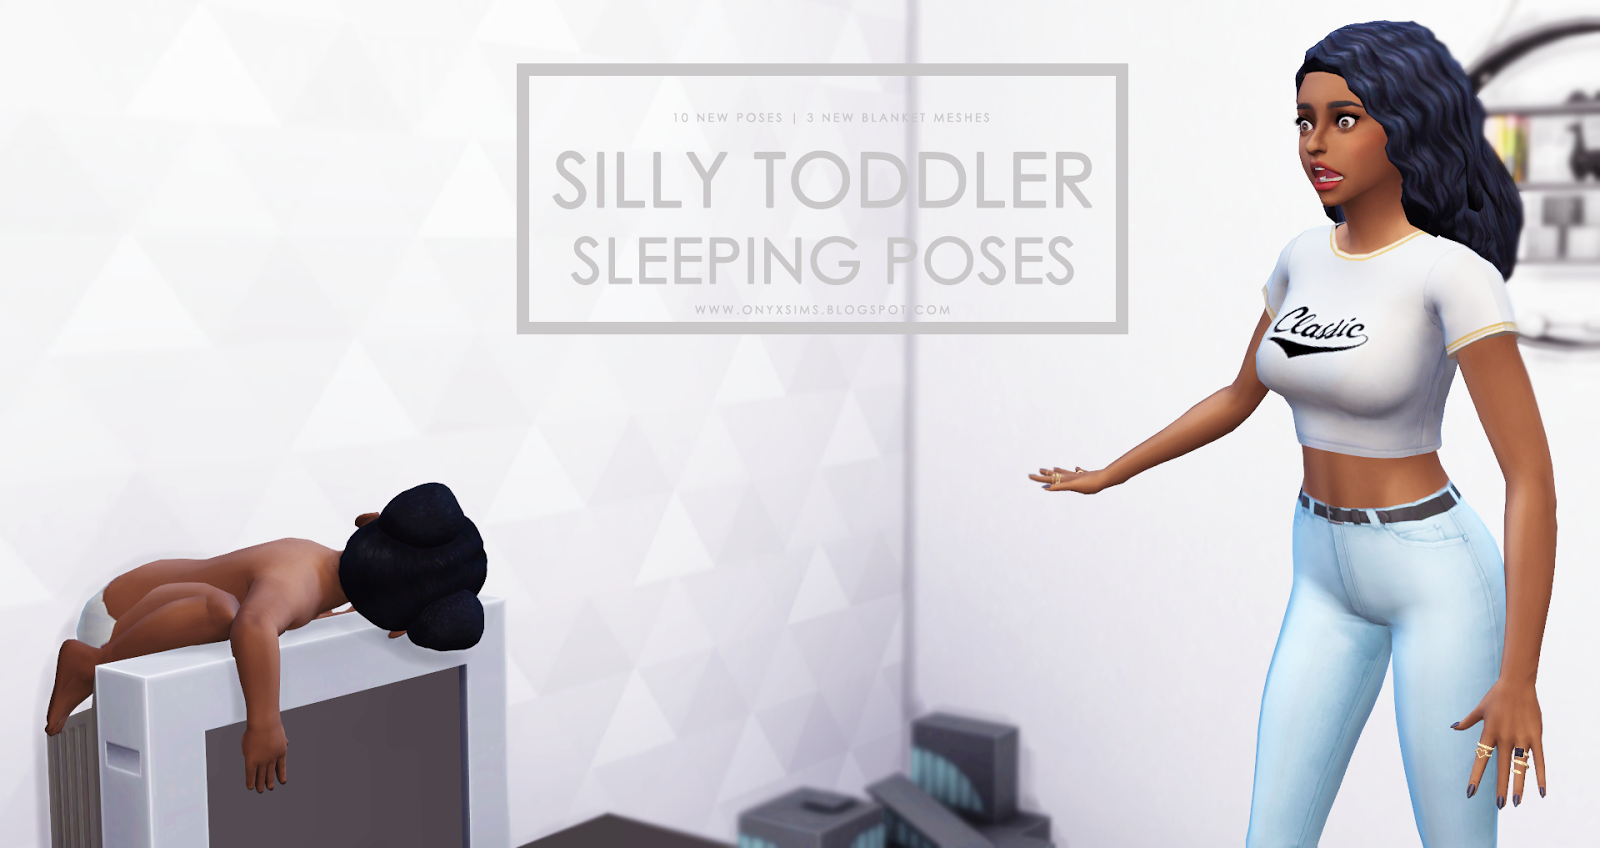 Silly sleeping toddler poses onyx sims